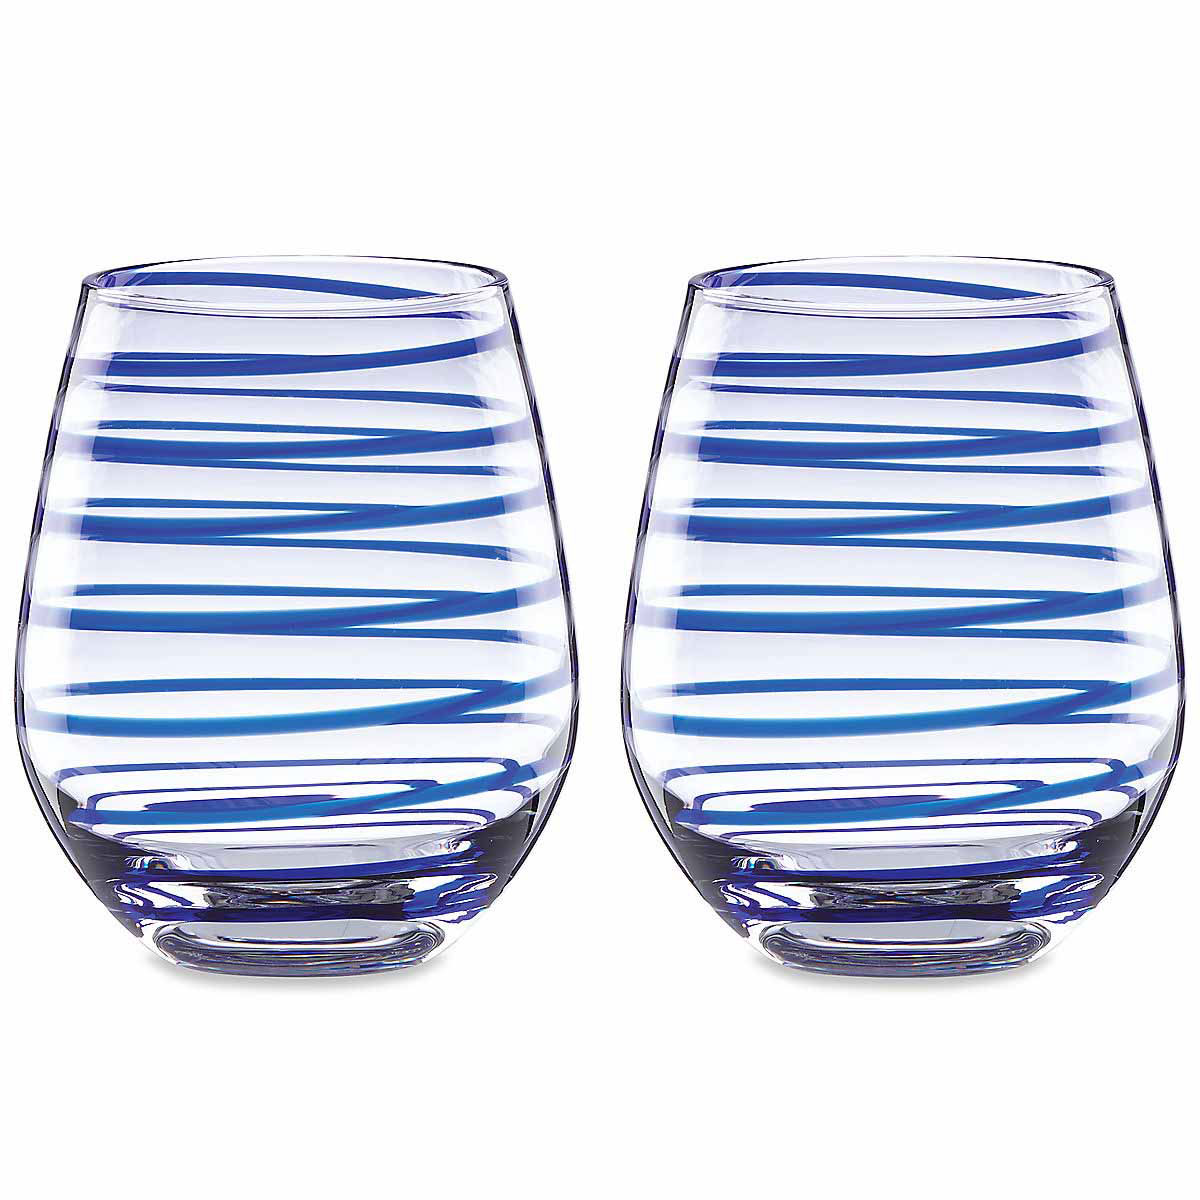 Kate Spade New York, Lenox Charlotte Street Stemless Crystal Wine, Pair